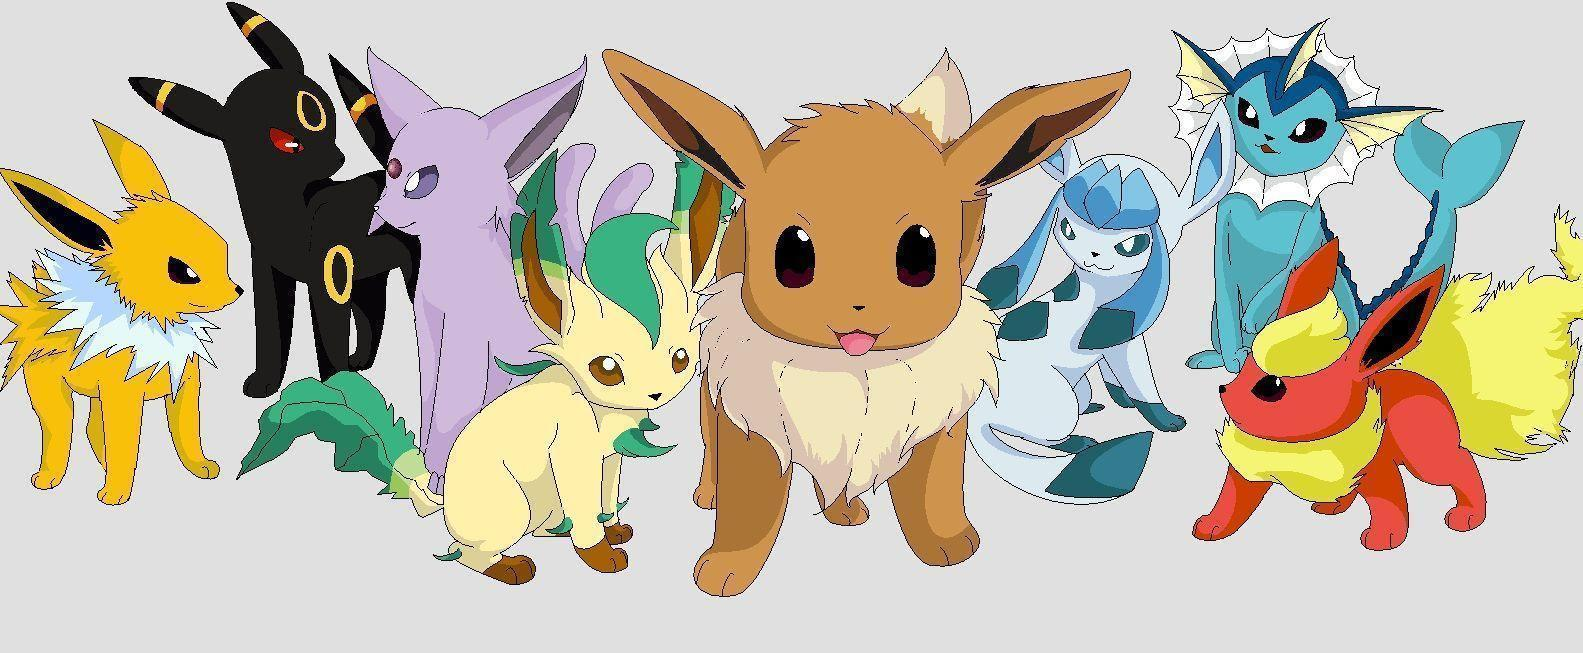 Image For > Eevee Evolution Wallpapers